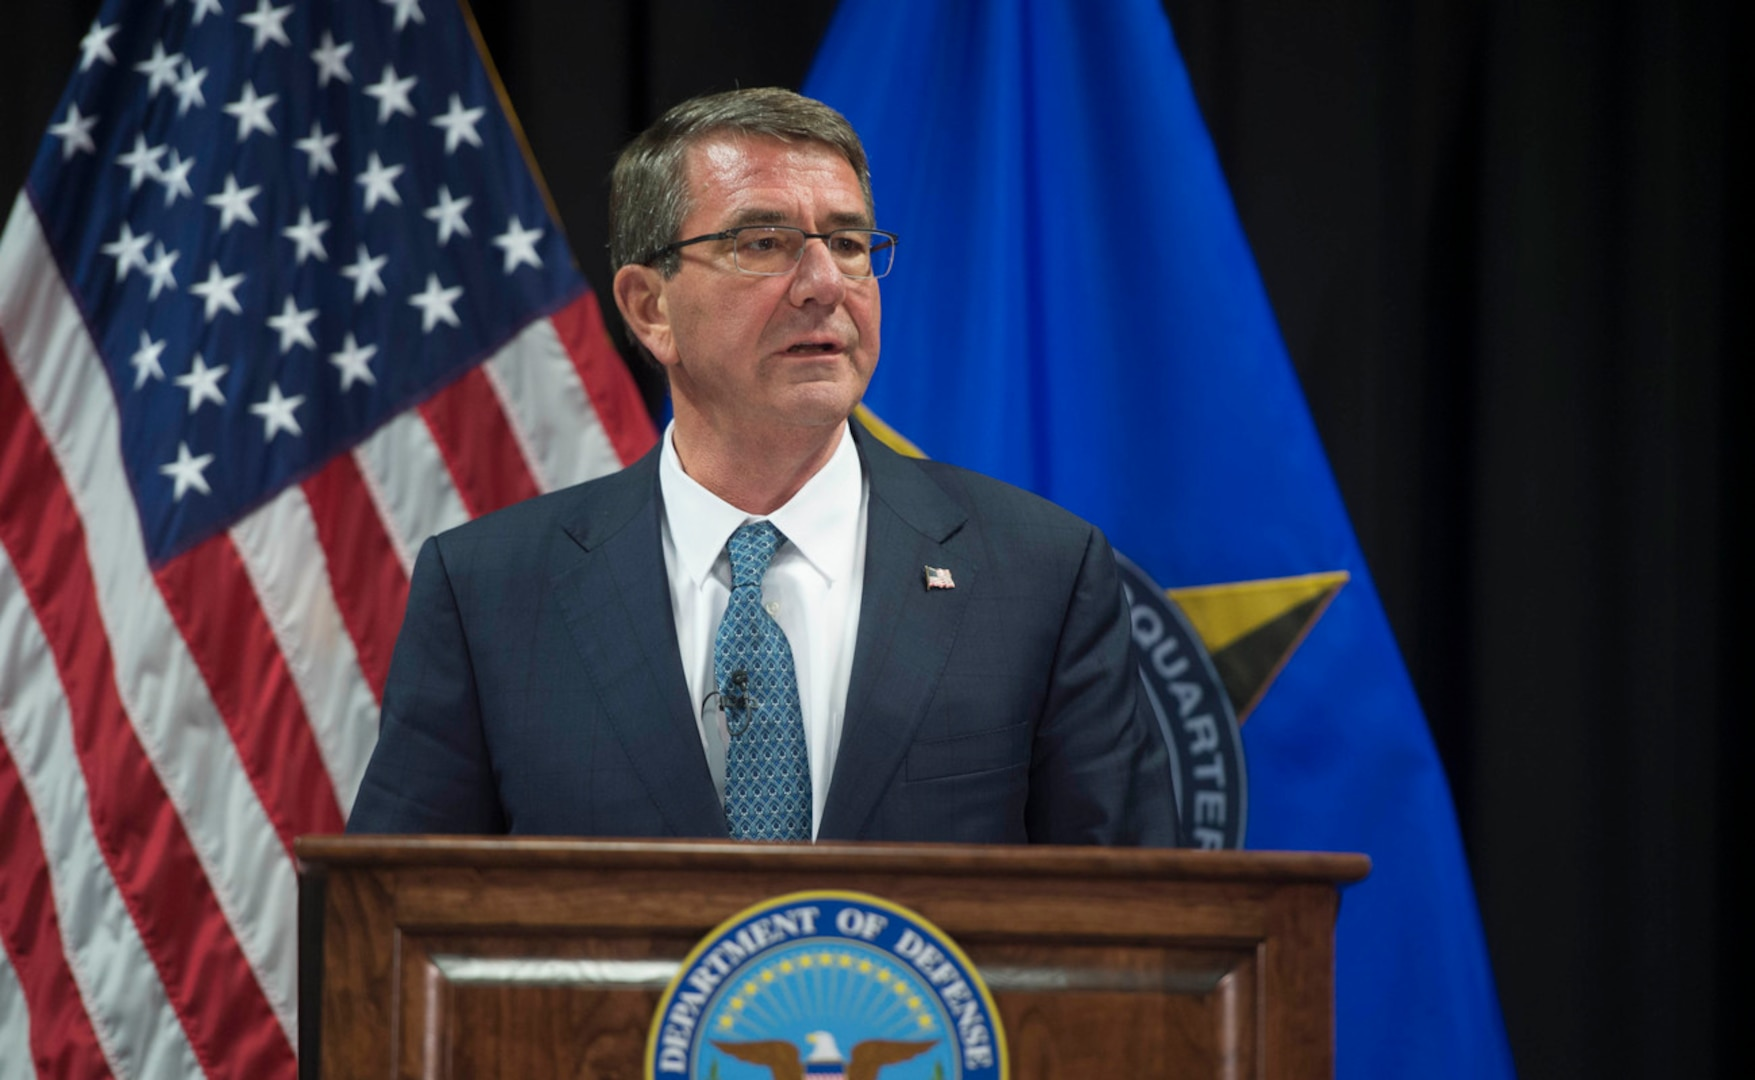 Secretary of Defense Ash Carter addresses the press after meeting with the defense ministers of countries that are making the most substantial contributions to the counter-ISIL fight at U.S. European Command Headquarters, May 4, 2016. (DoD photo by Navy Petty Officer 1st Class Tim D. Godbee)